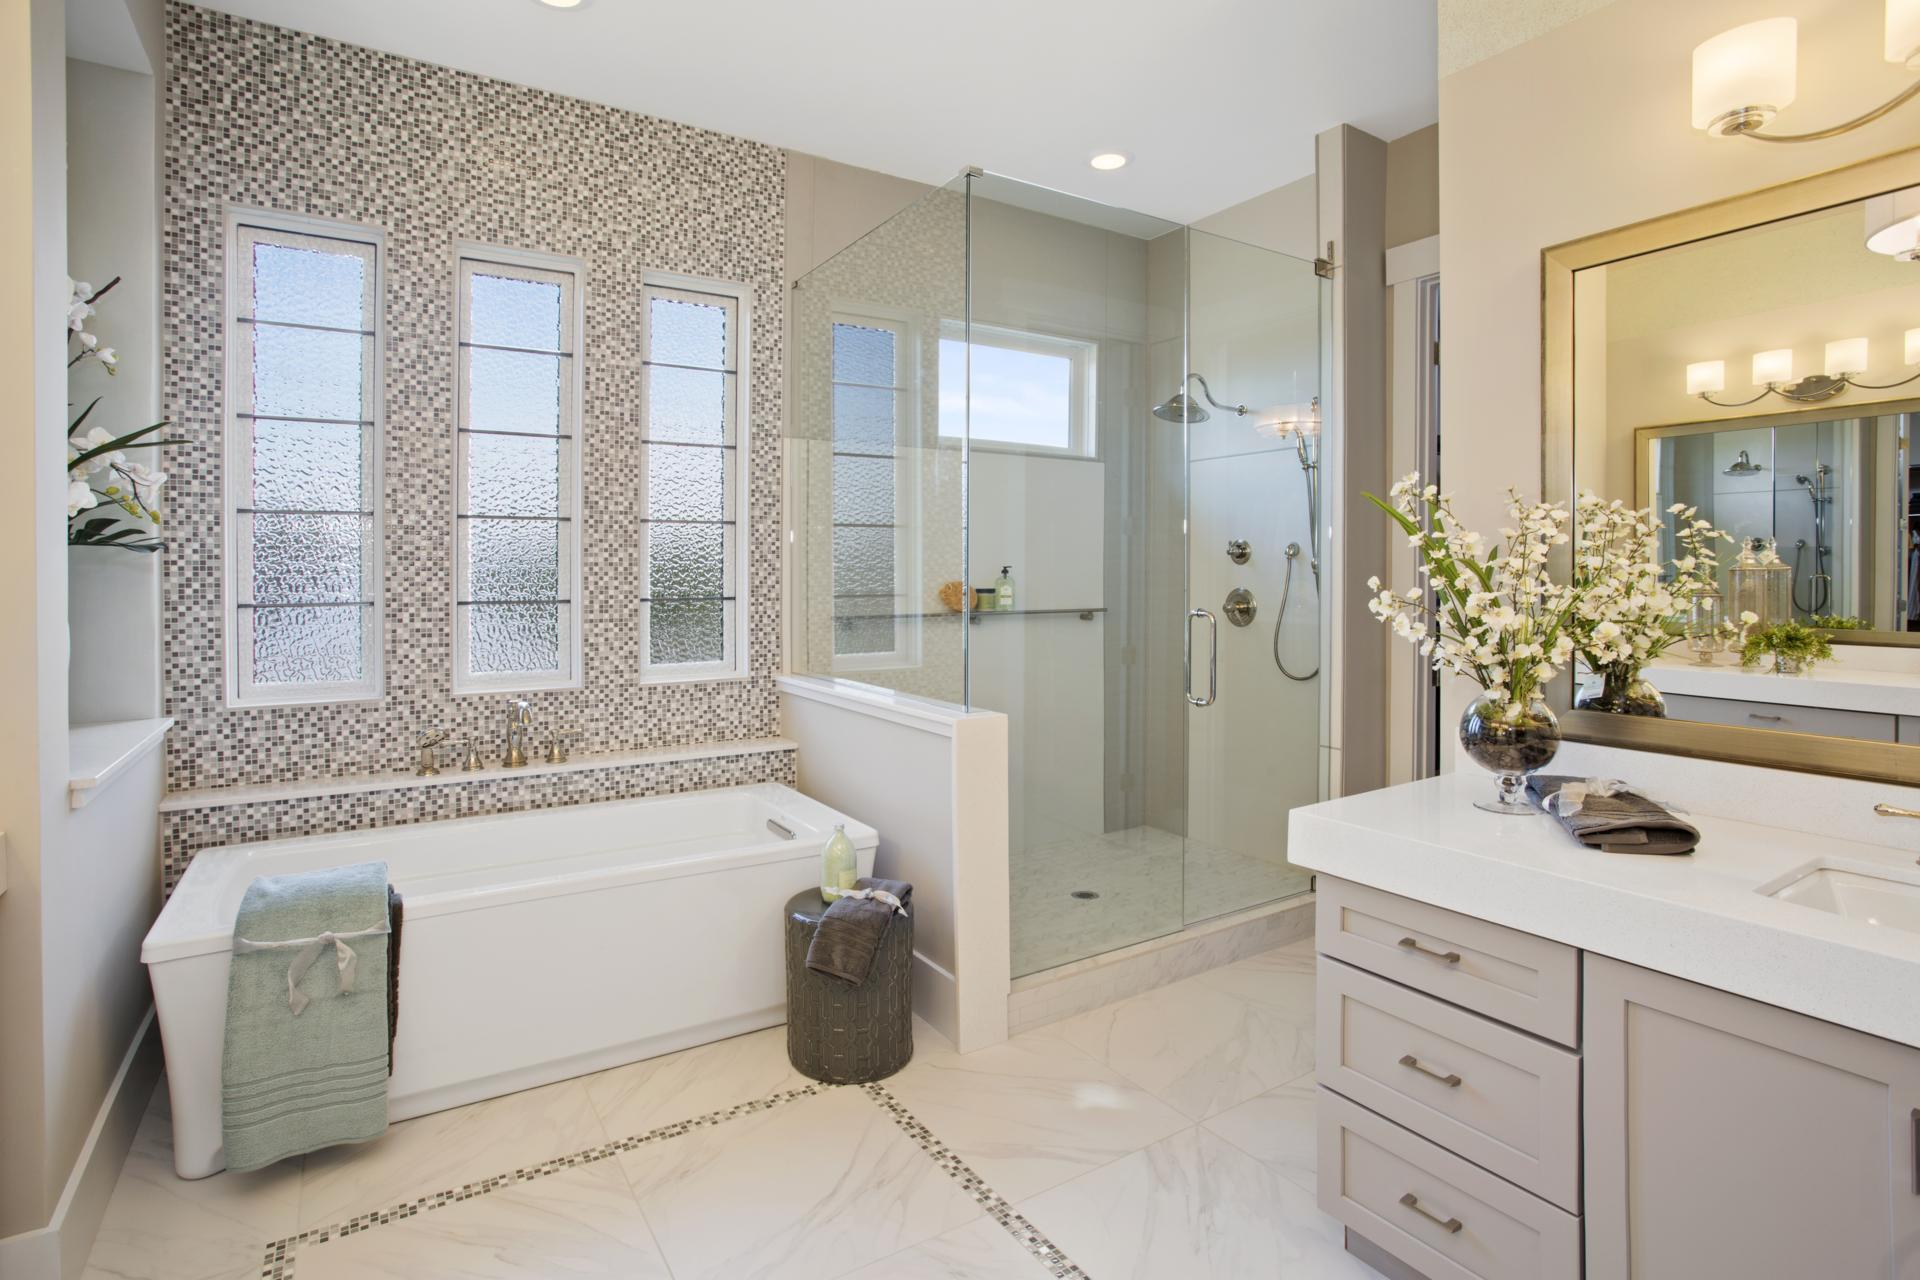 Bathroom featured in the Sebastian By Drees Homes in Cleveland, OH